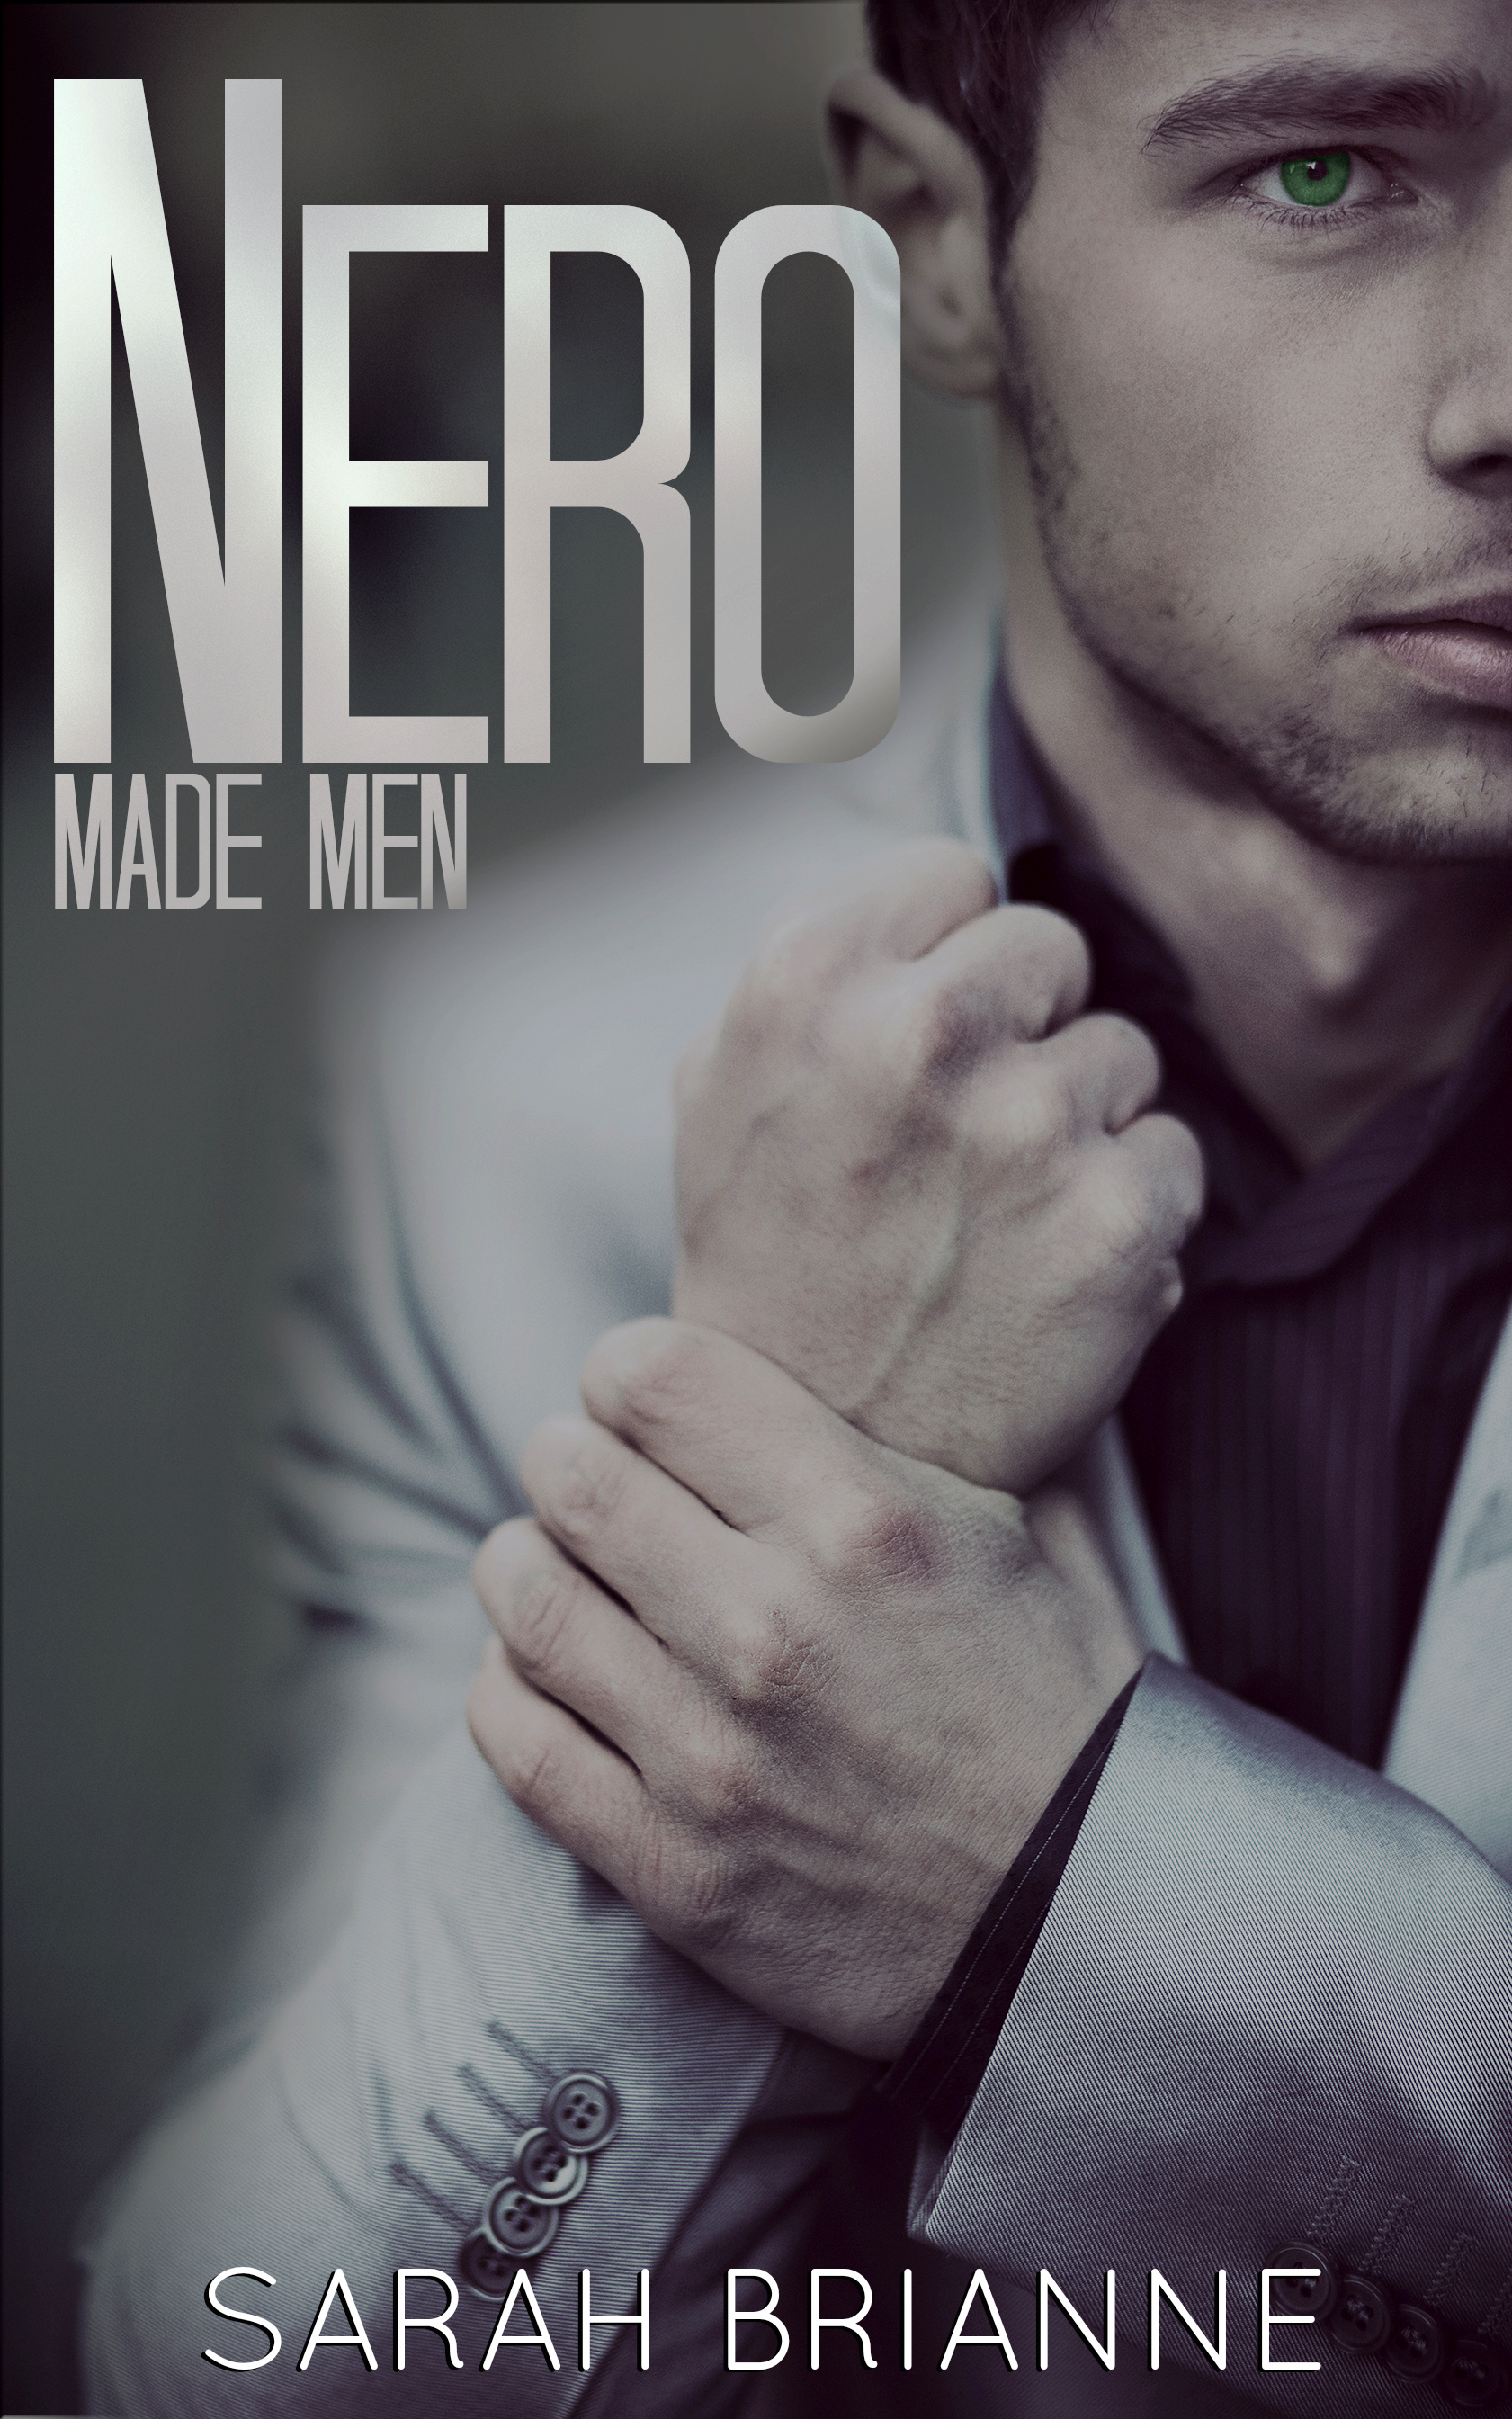 CHARACTER Q&A: NERO by Sarah Brianne